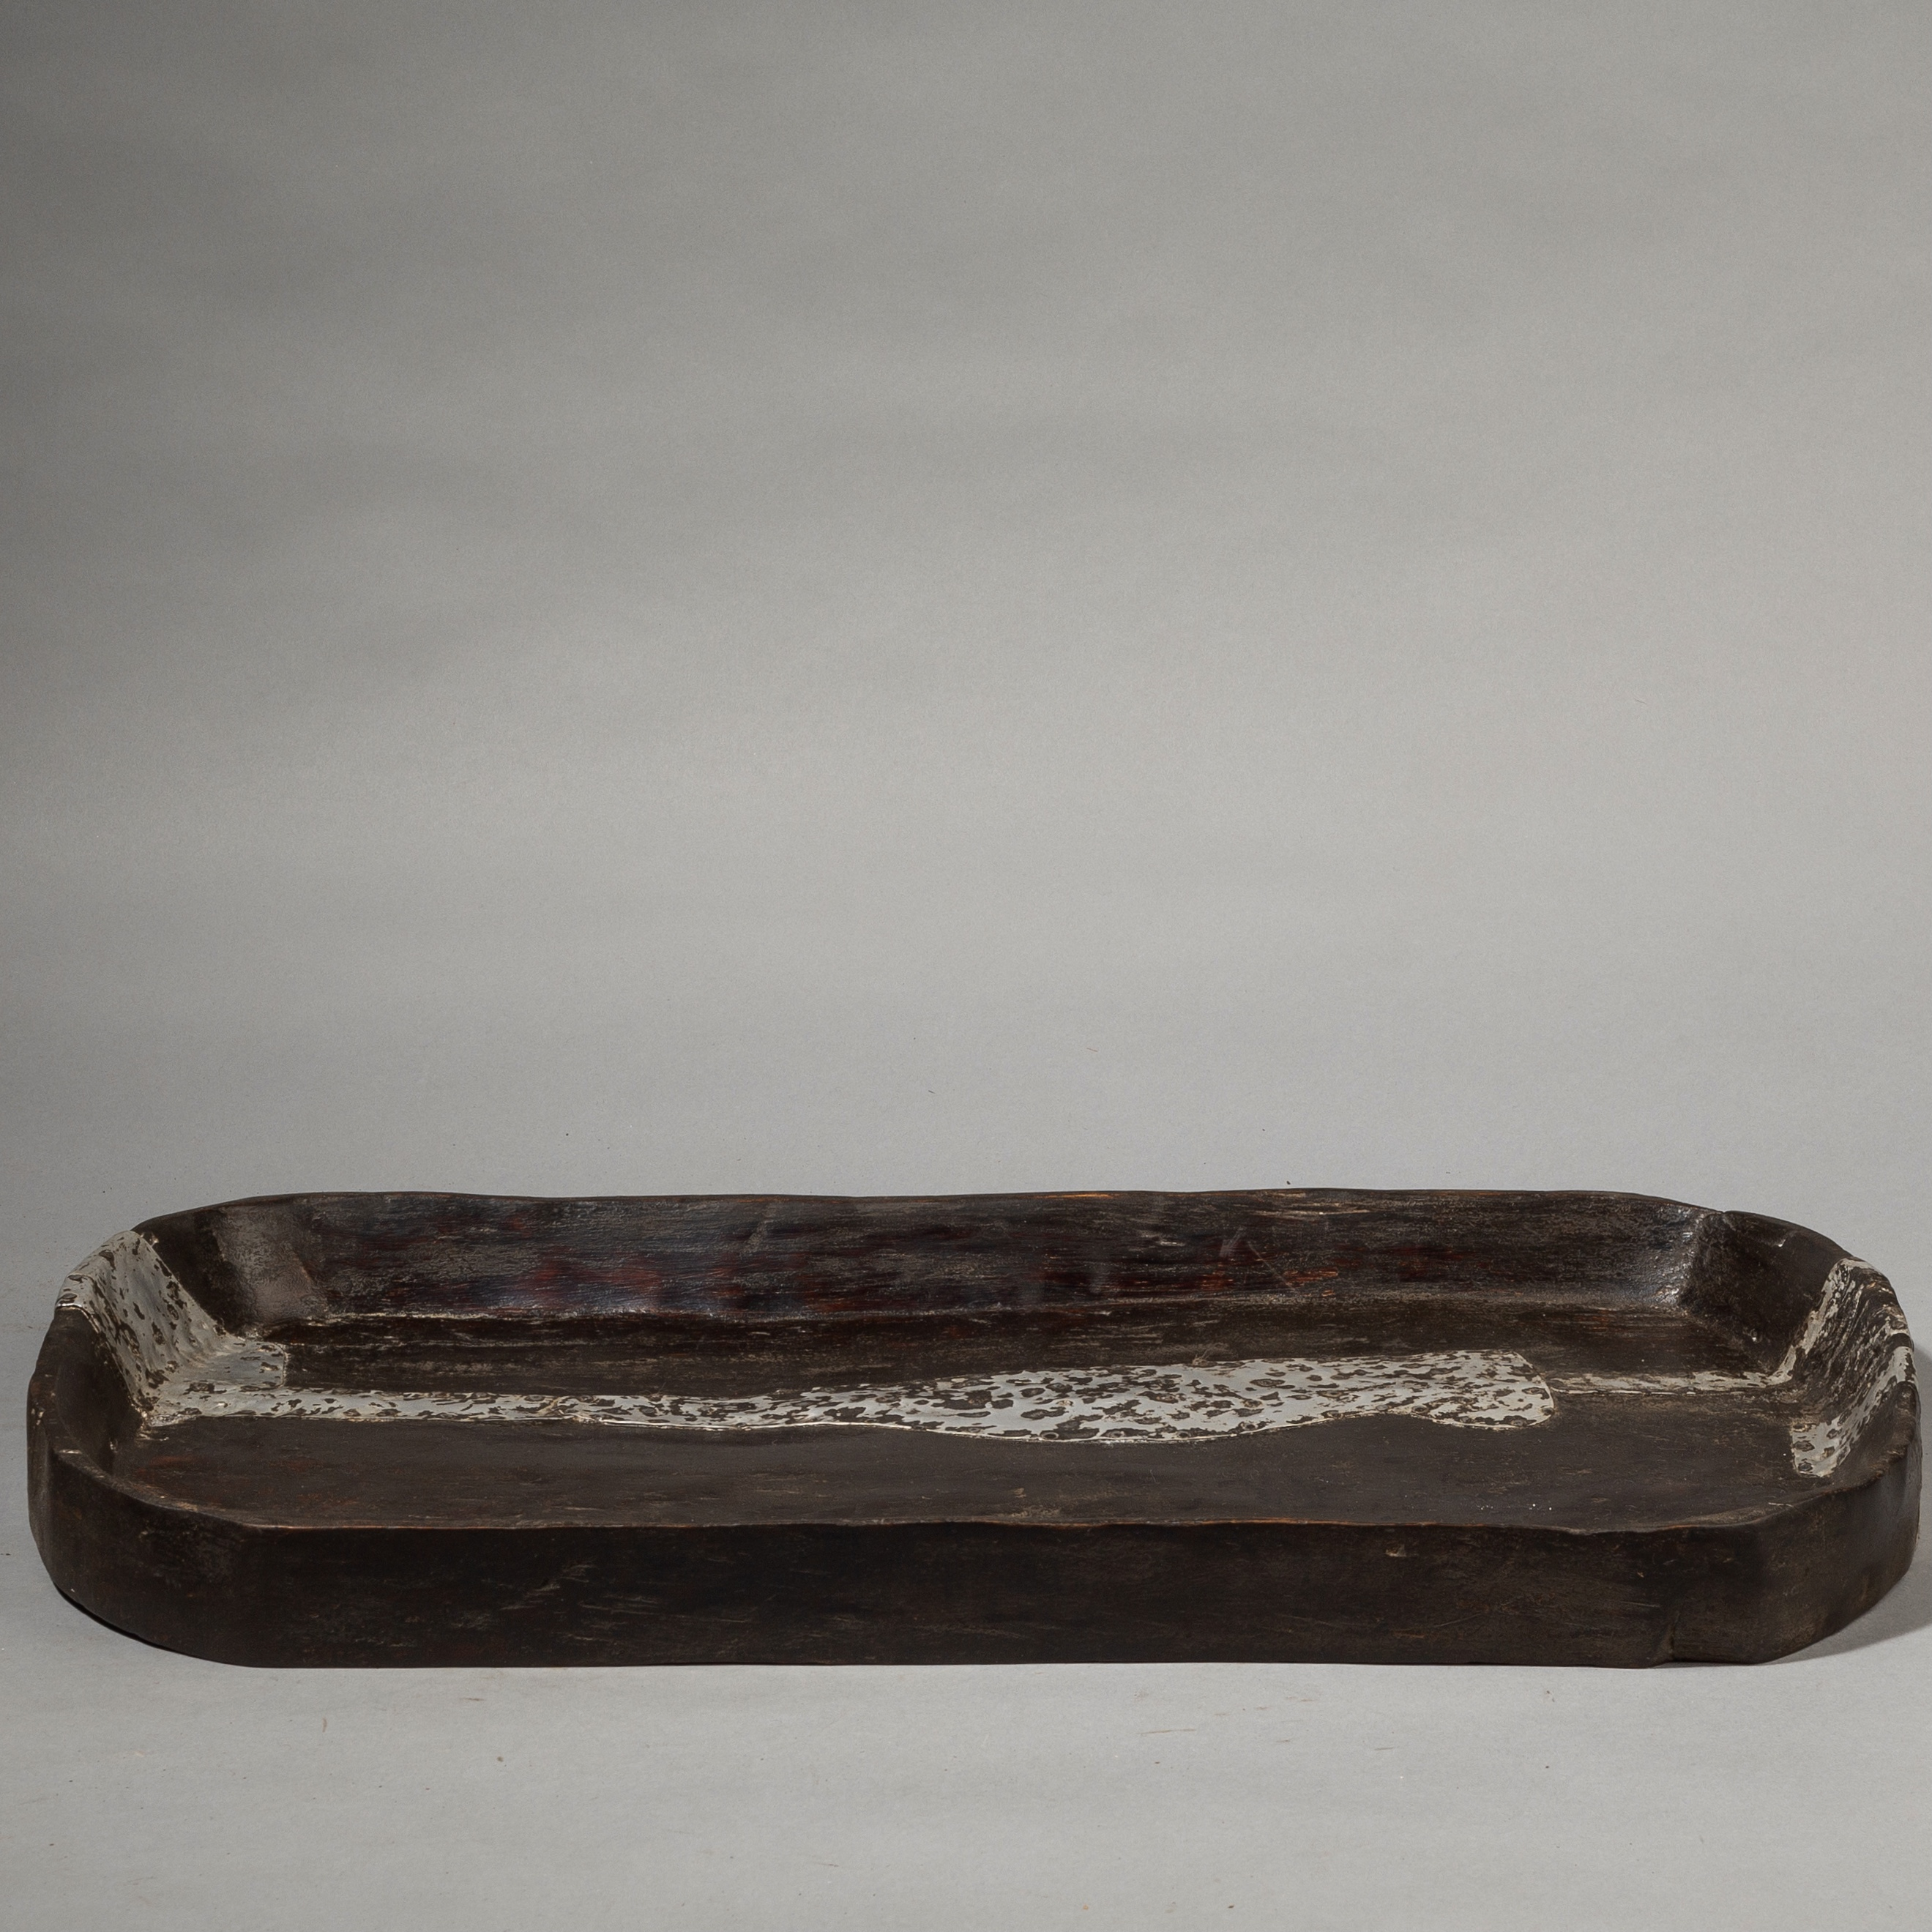 A SOPHISTICATED LARGE WOODEN TRAY, FIPE TRIBE OF TANZANIA ( No 3595 )